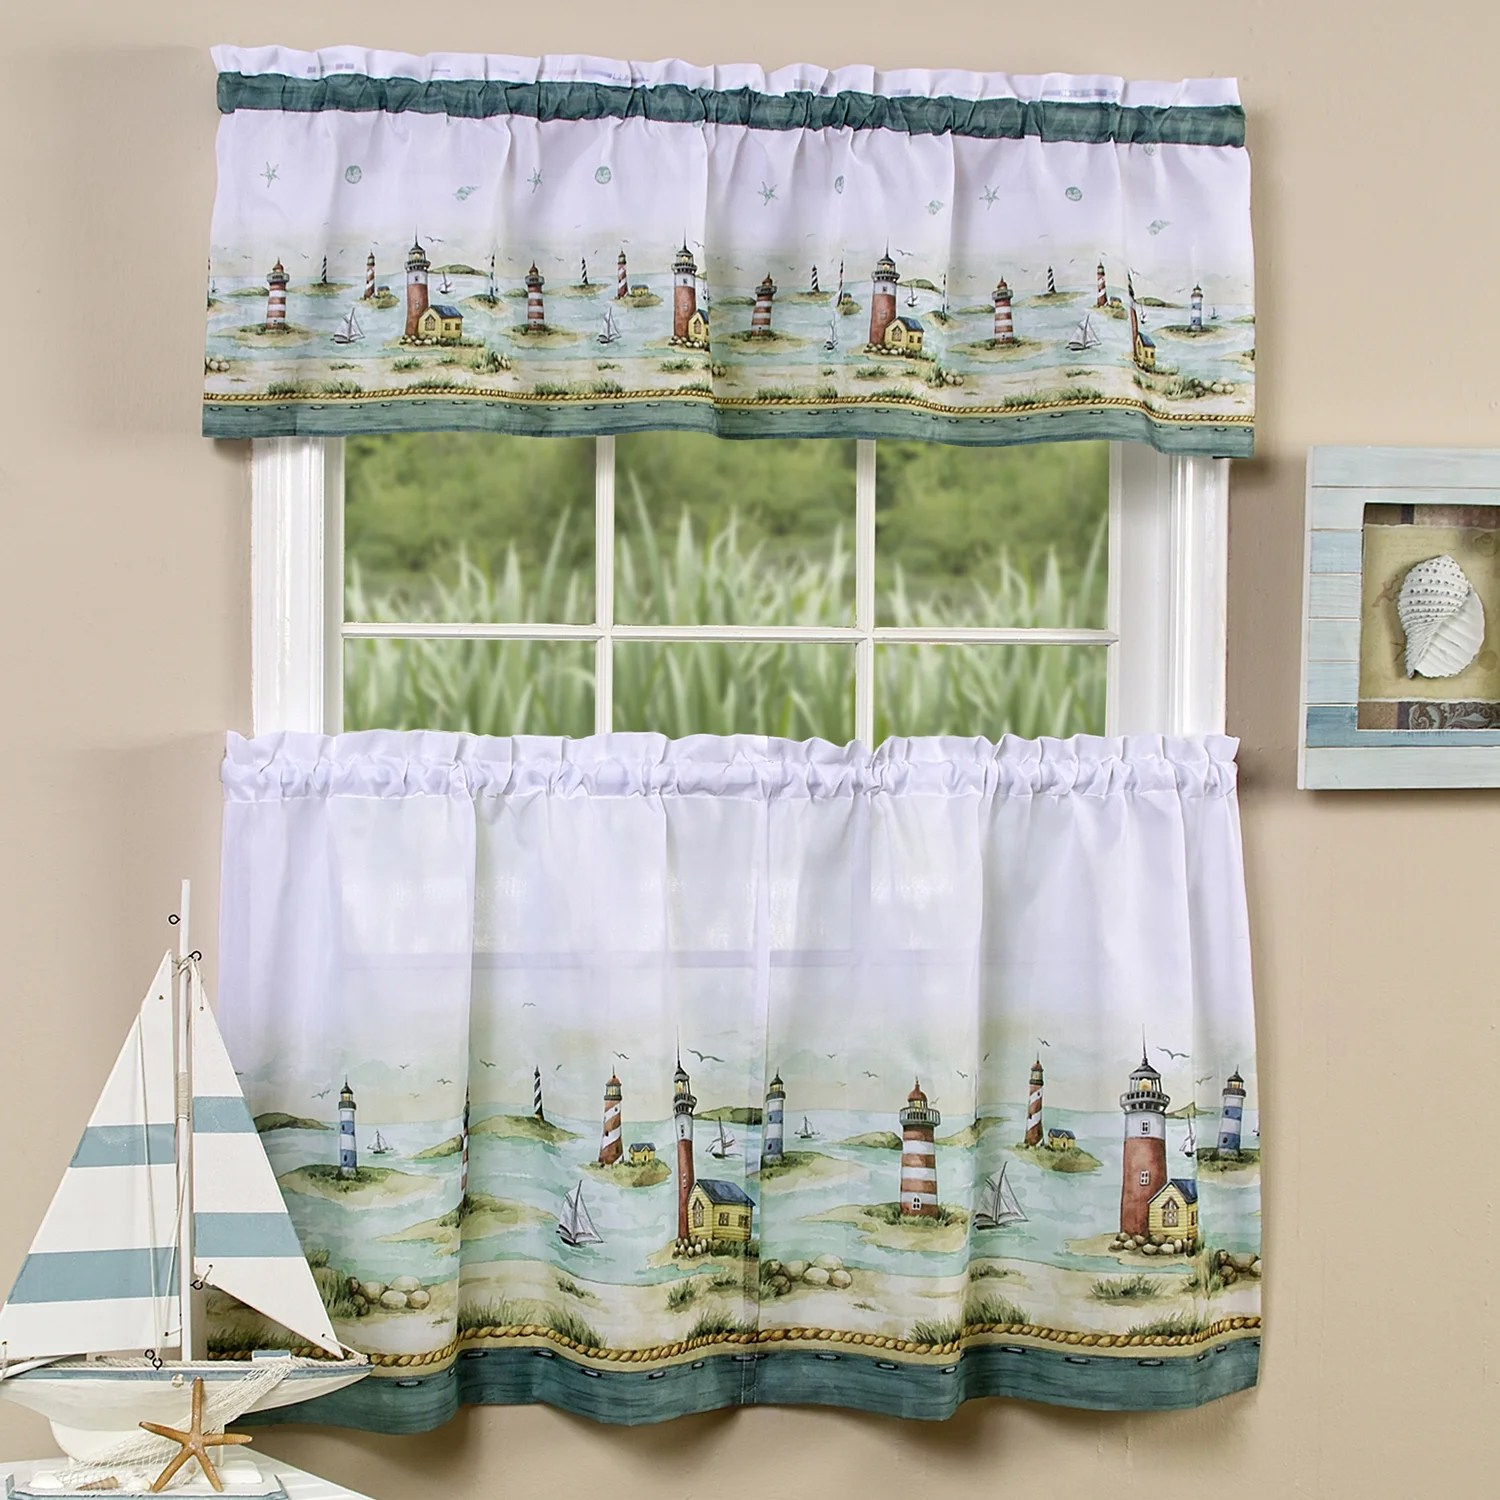 Traditional Curtains Traditional Two Piece Tailored Tier And Valance Window Curtains Set With Detailed Lighthouse Print 36 Inch